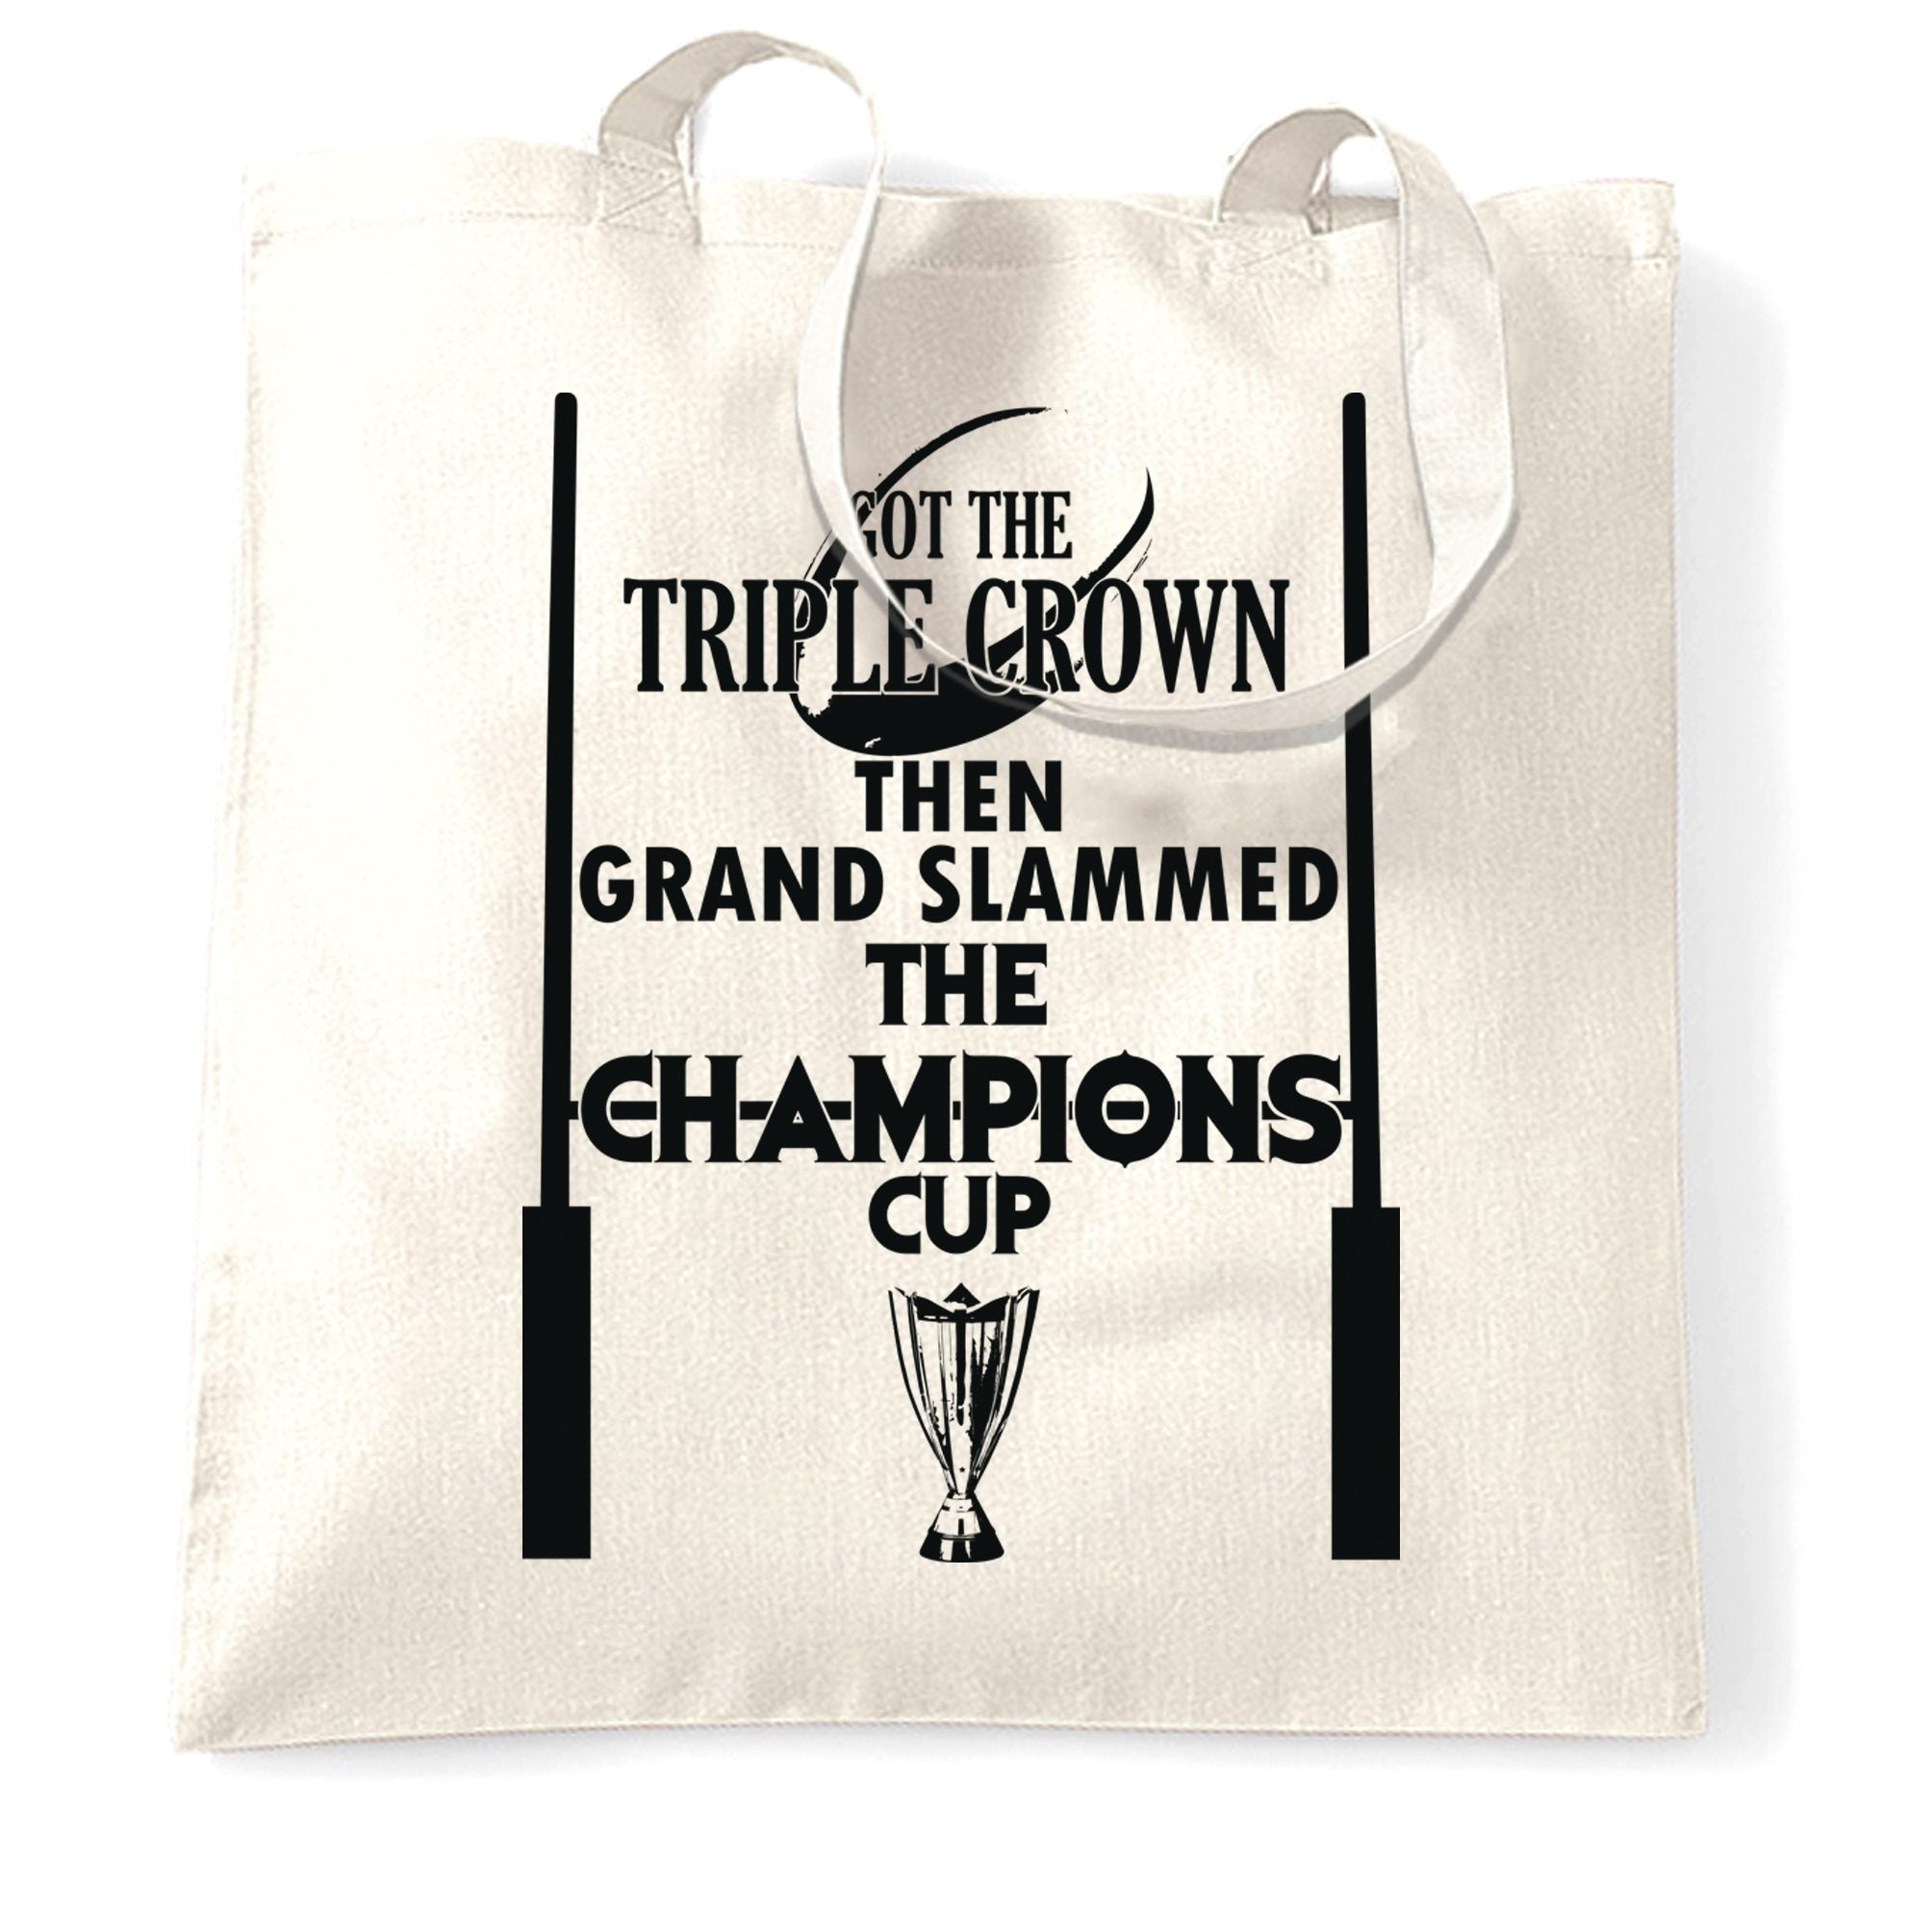 Triple Crown Tote Bag Then Grand Slammed Champions Cup